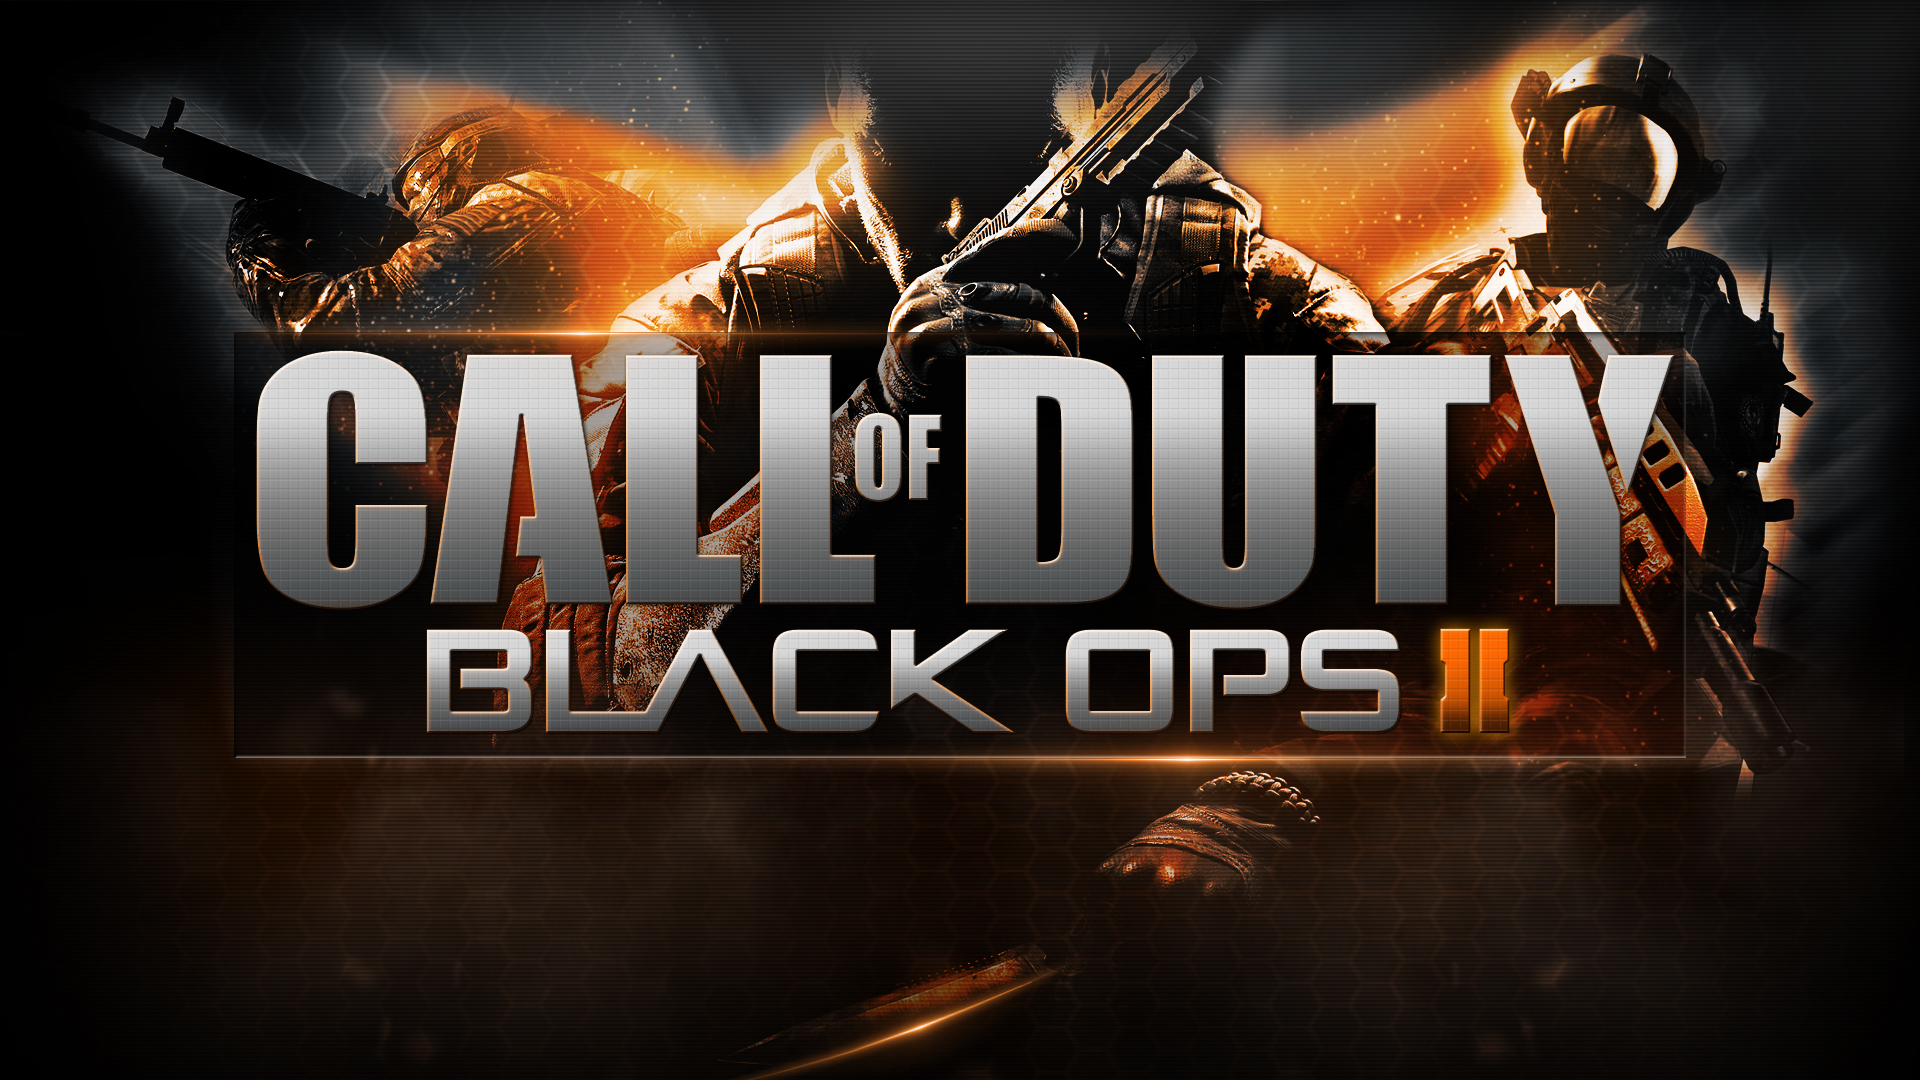 black ops zombies wallpaper - photo #23